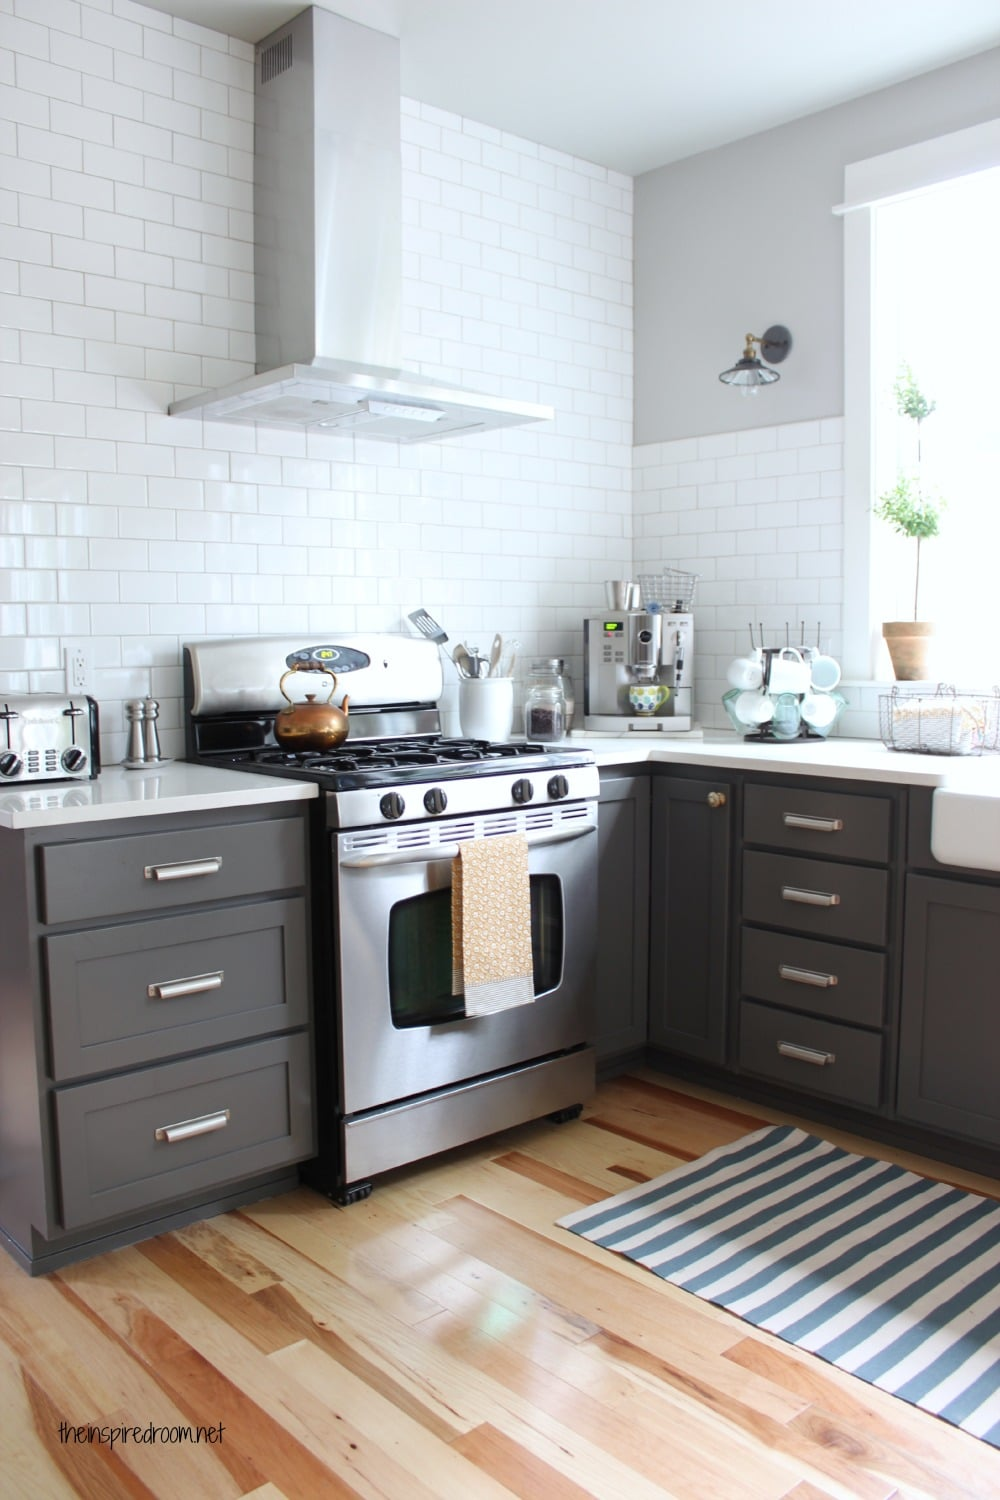 Kitchen Cabinet Colors Before After The Inspired Room - Colour schemes for grey kitchen units